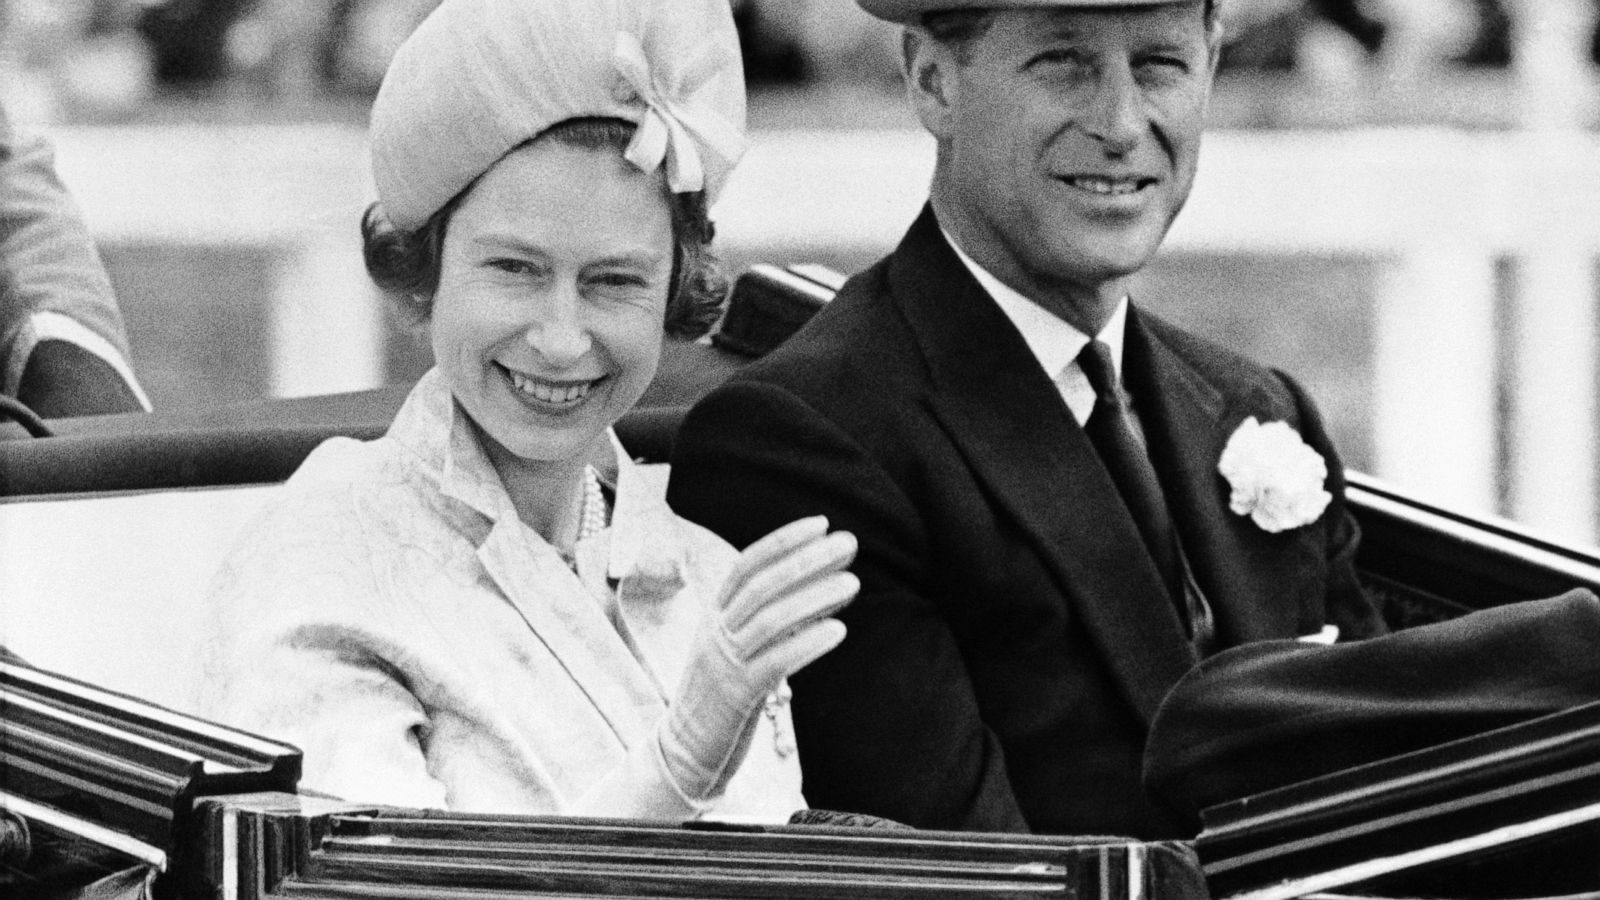 Still beside the queen at 99: Prince Philip to mark birthday - ABC News